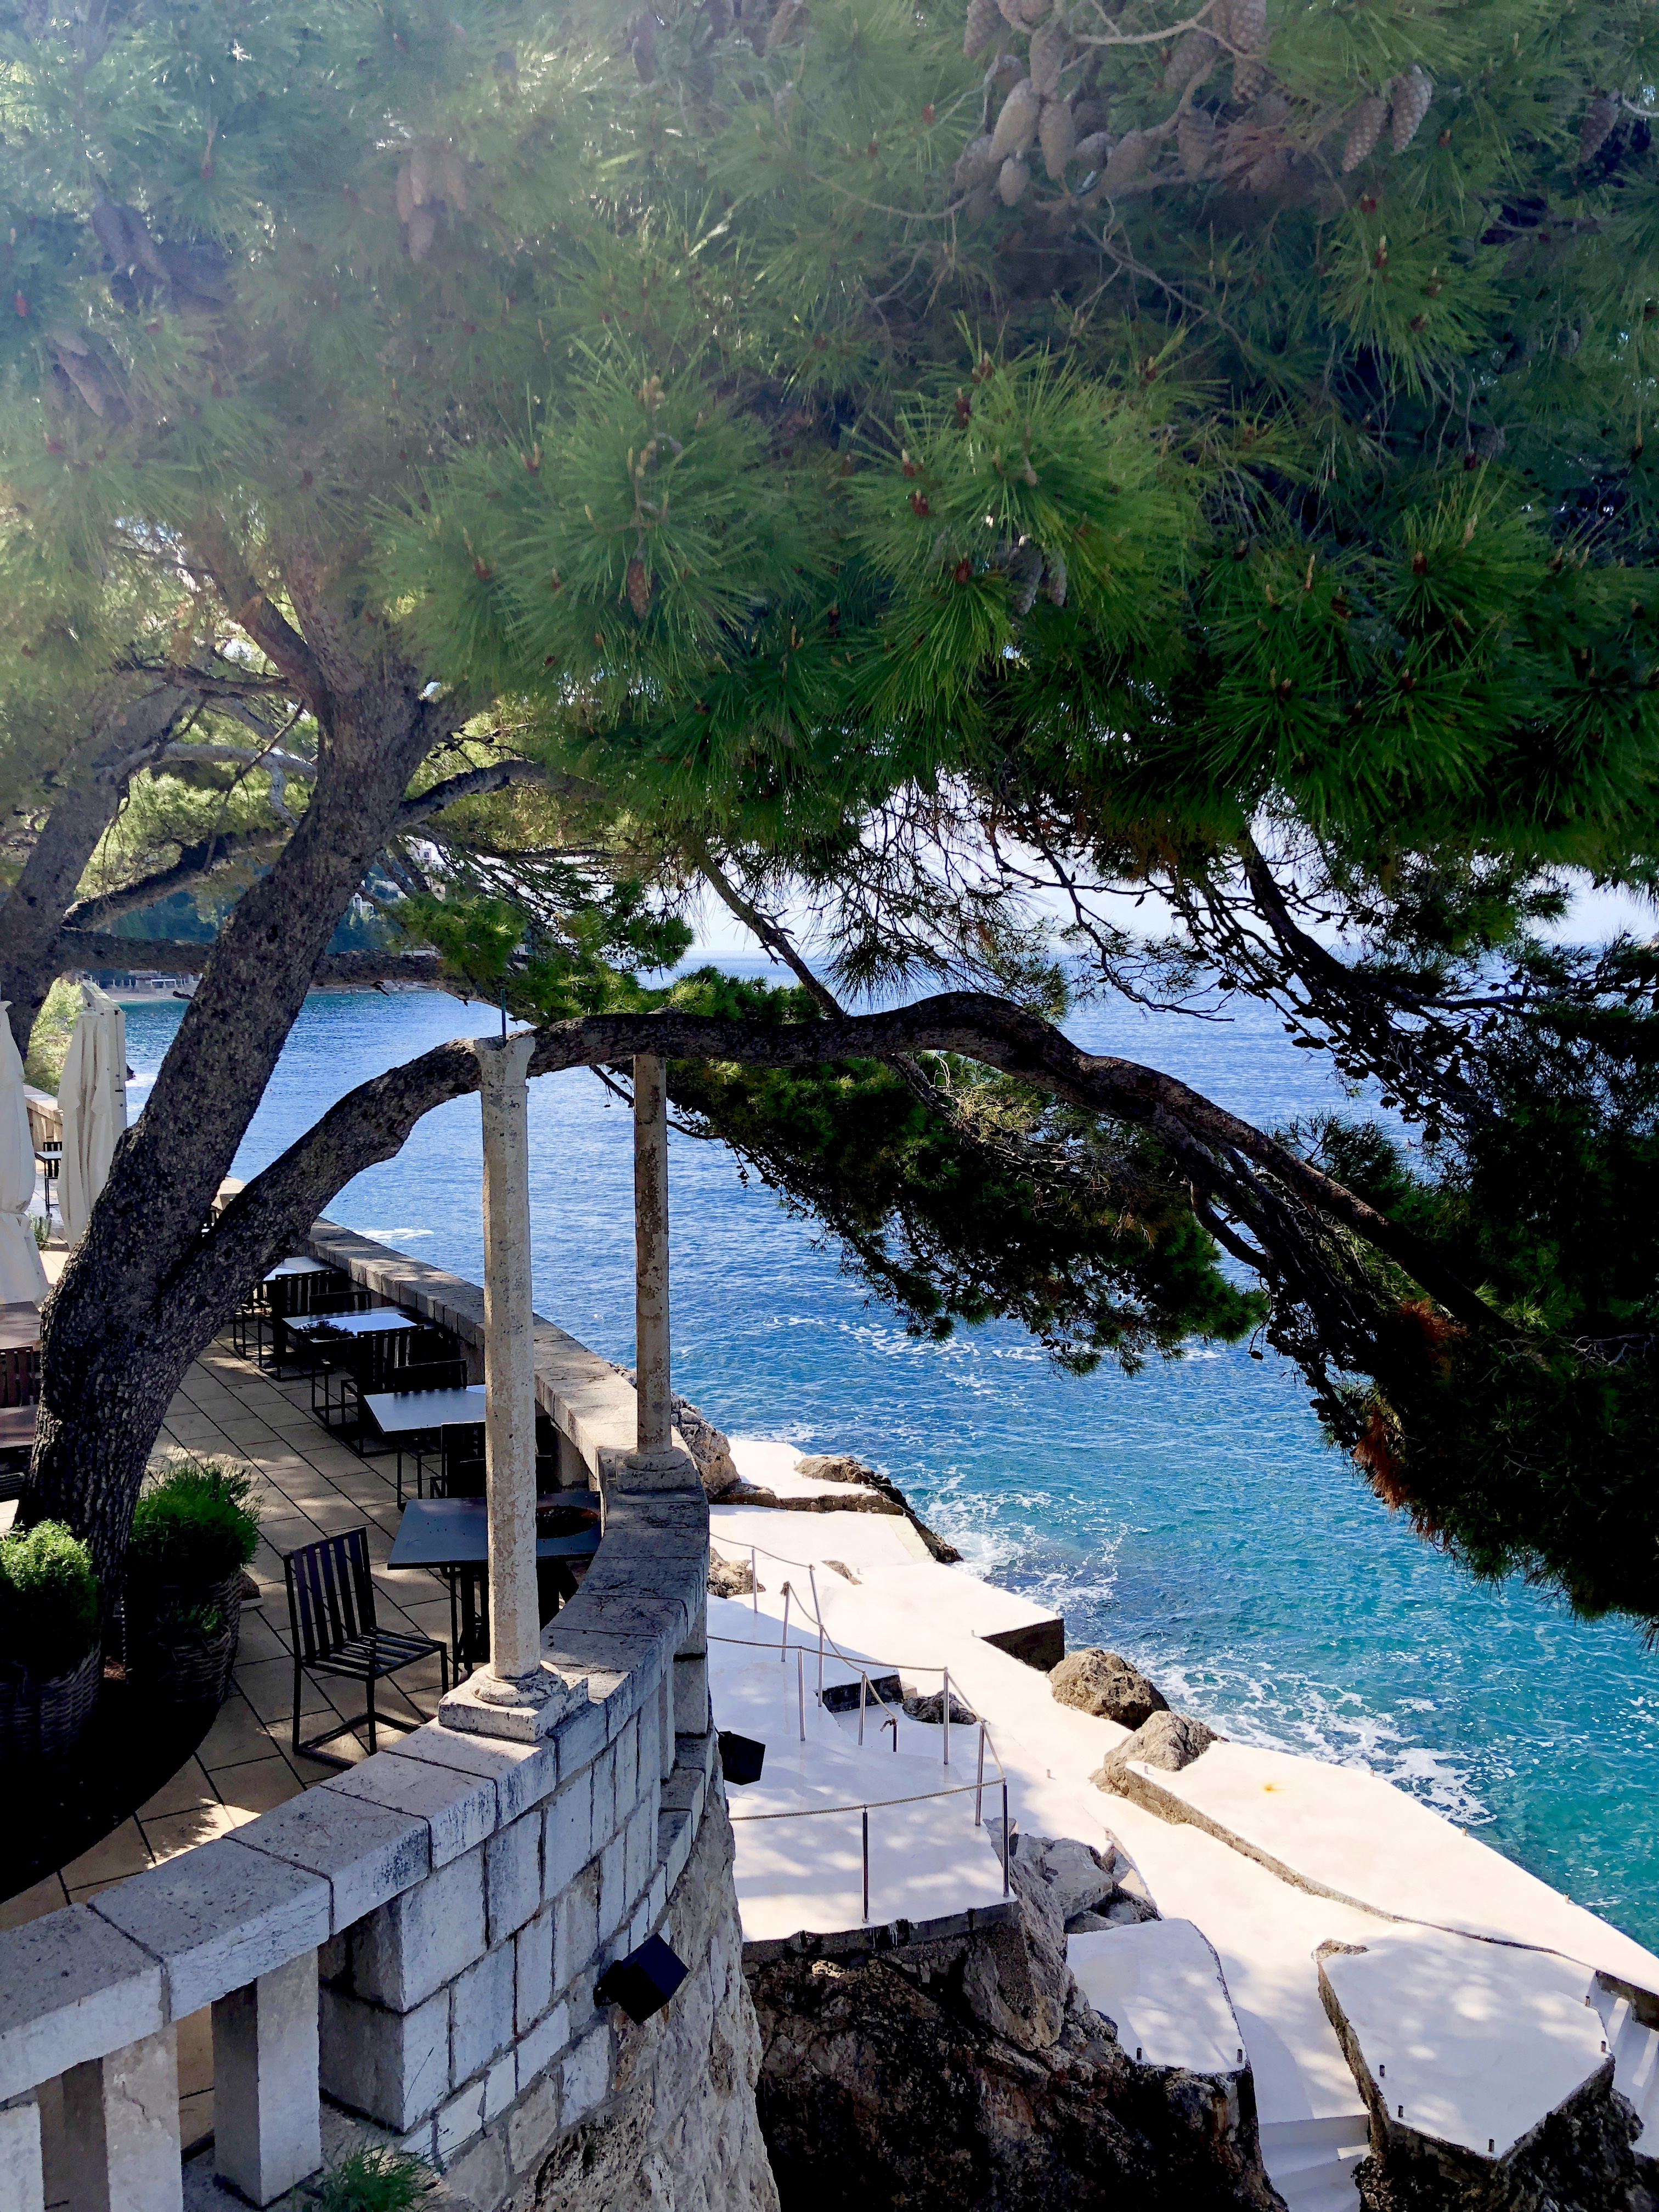 Tracy Dunn stayed at Villa Dubrovnik, and she highly recommends it!